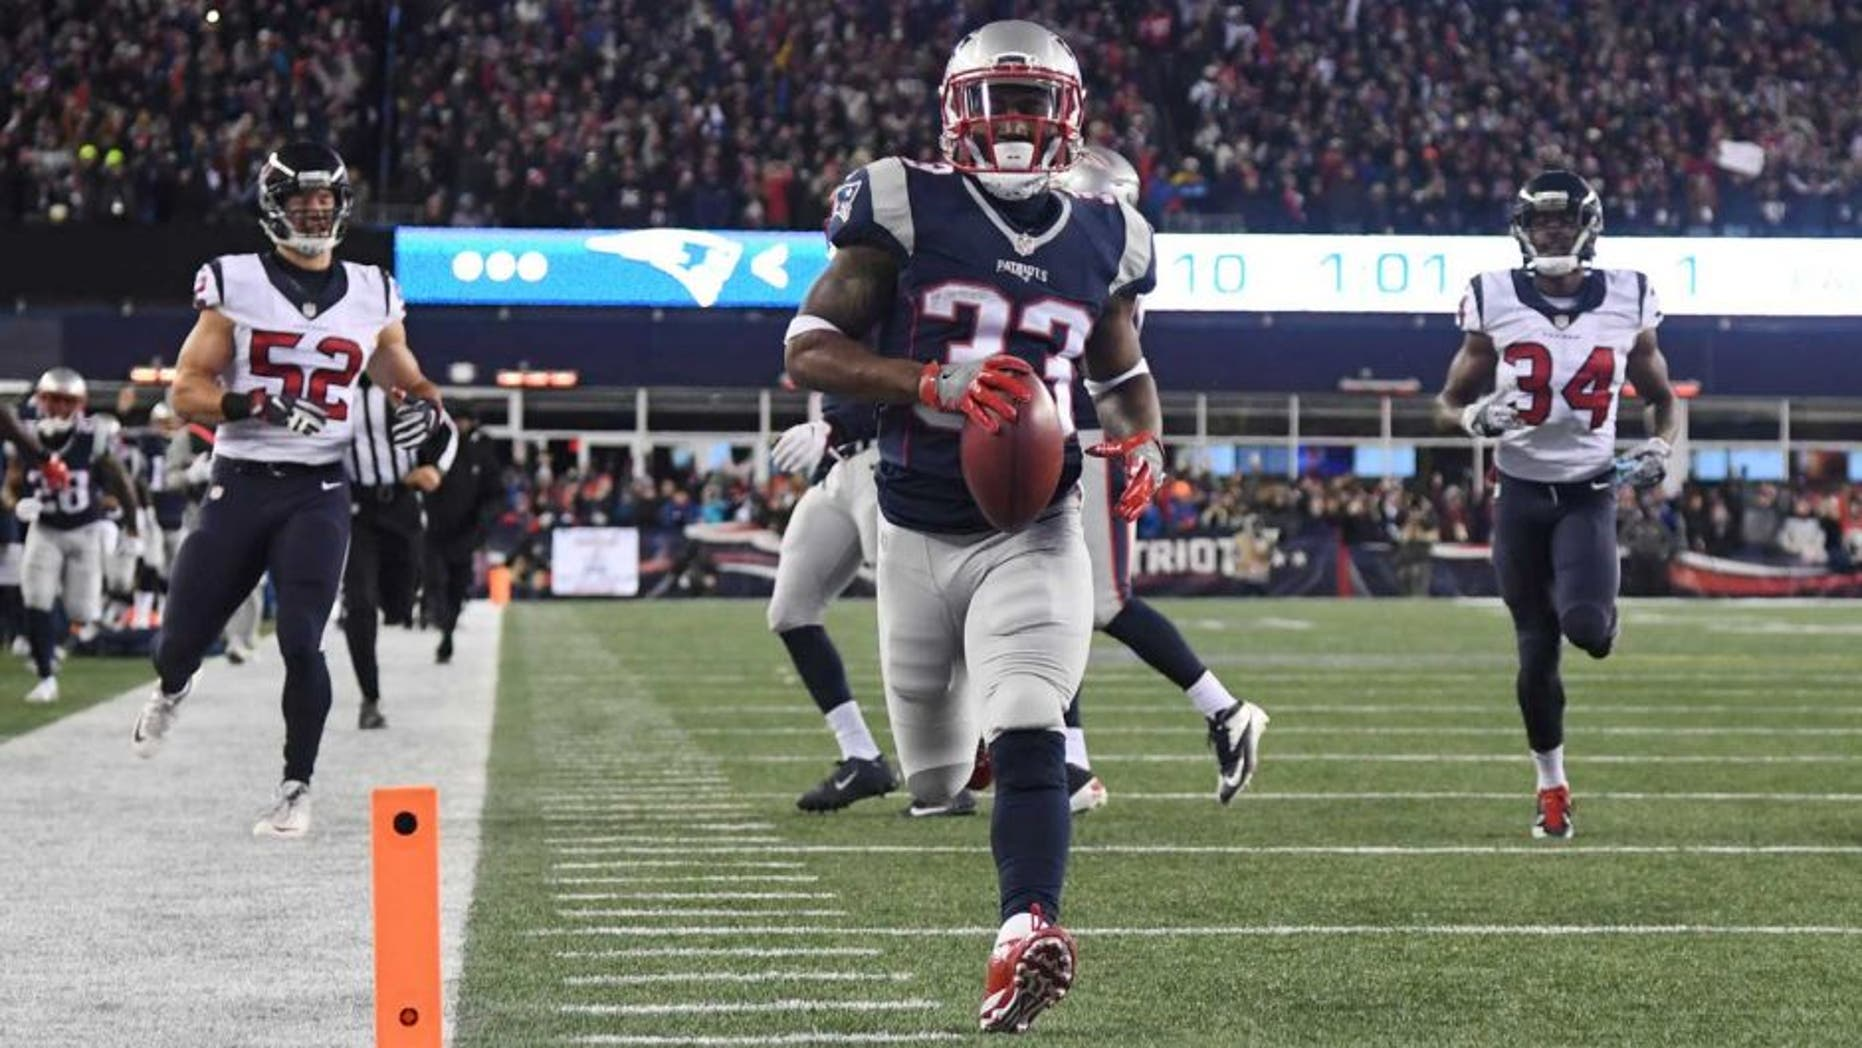 Jan 14, 2017; Foxborough, MA, USA; New England Patriots running back Dion Lewis (33)returns a kick for a touchdown against the Houston Texans during the first quarter in the AFC Divisional playoff game at Gillette Stadium. Mandatory Credit: James Lang-USA TODAY Sports